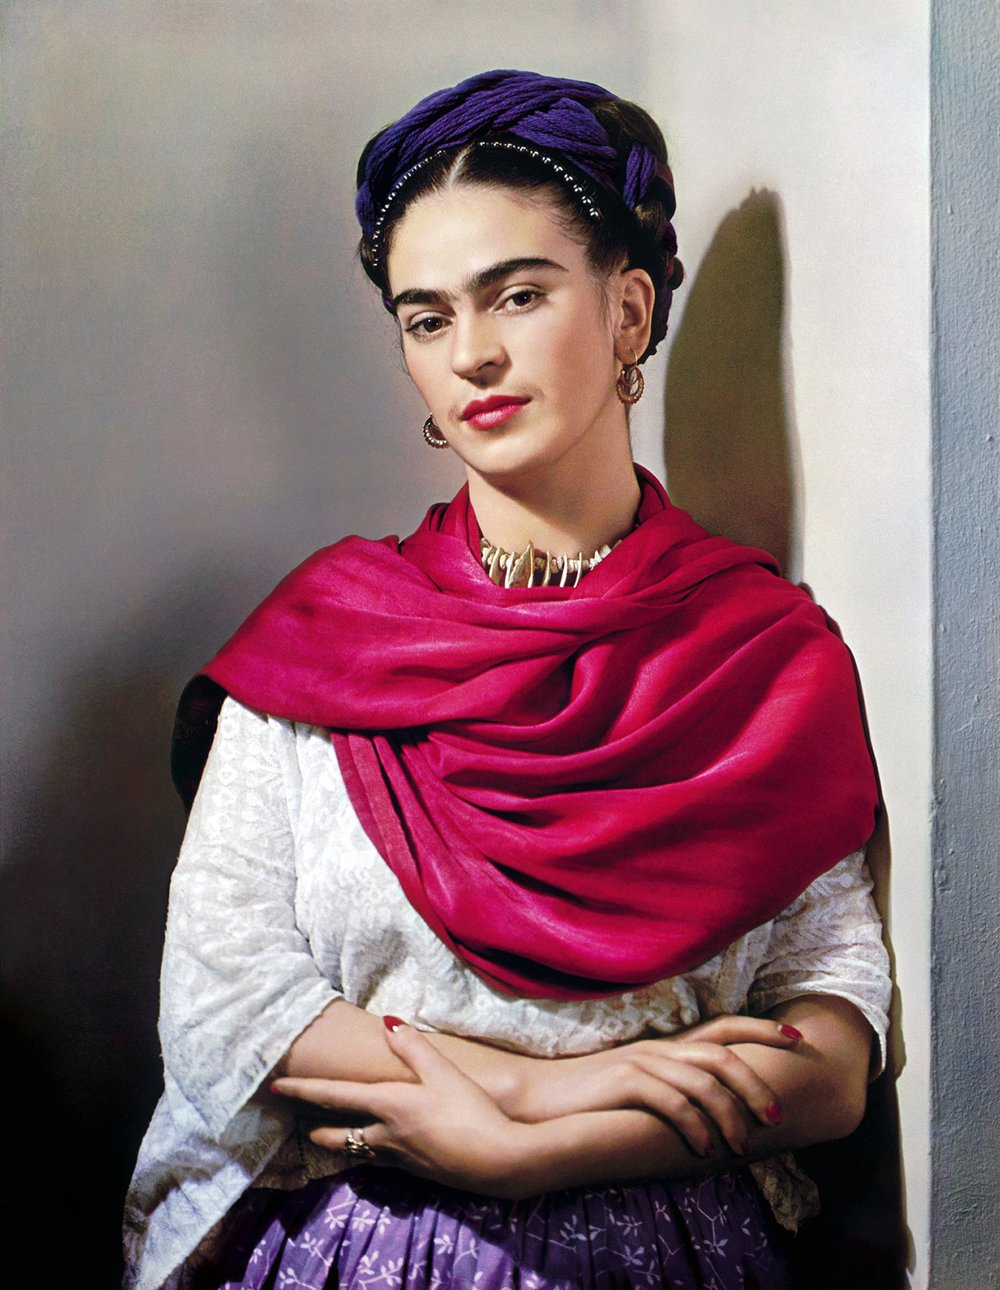 Frida Kahlo - The free charts are to cross stitch this image with 30 colors